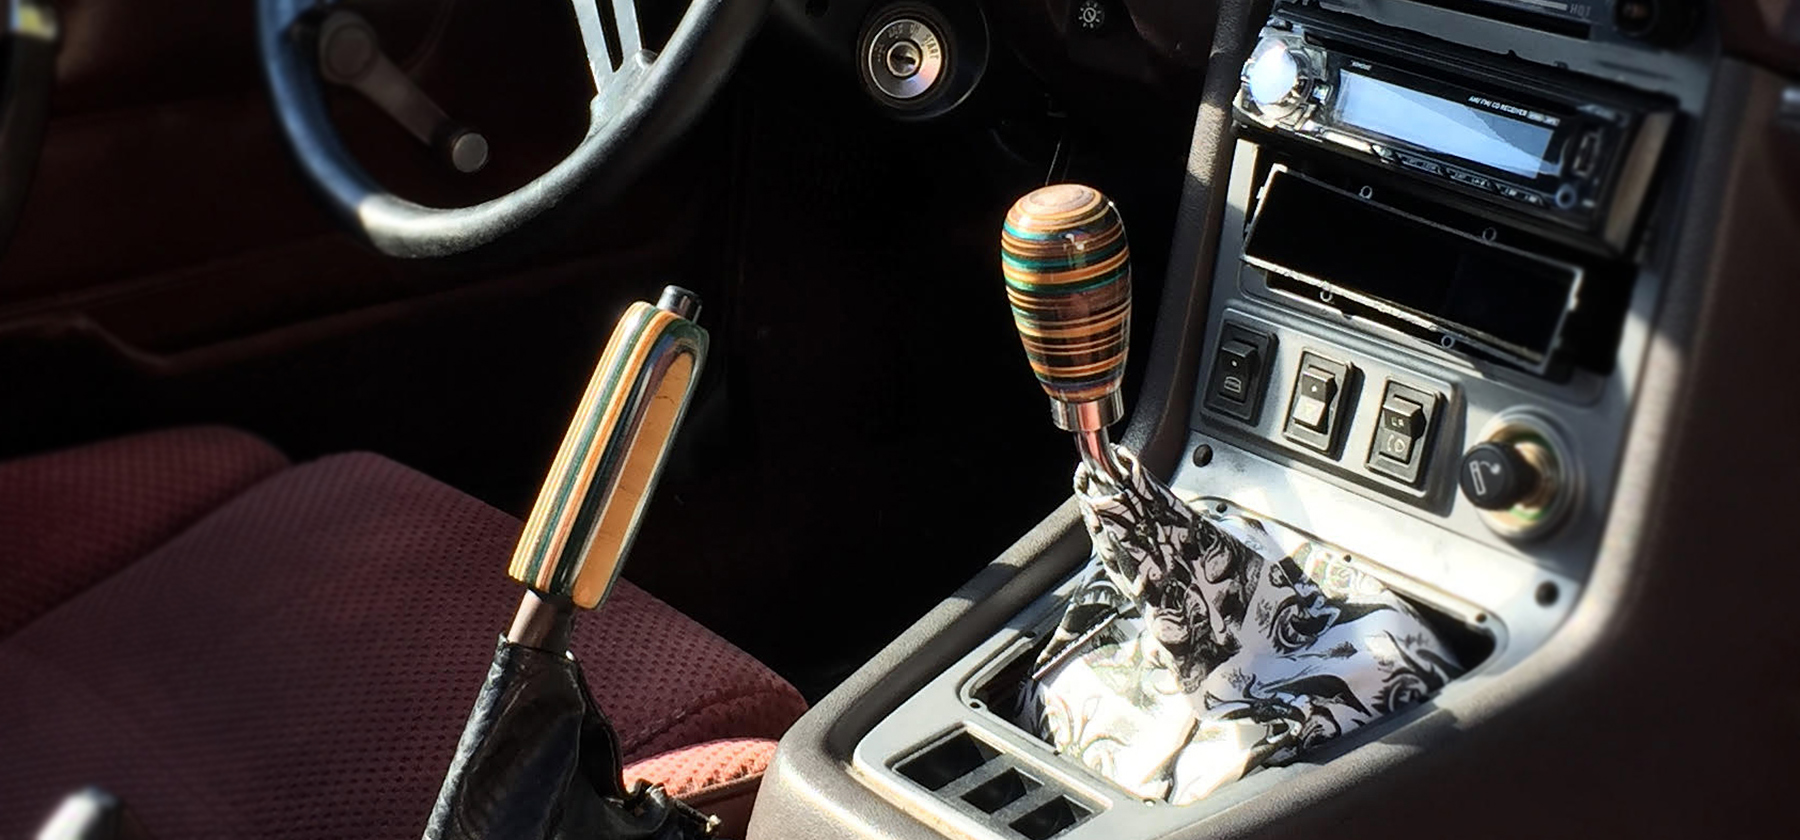 mazda rx7 shift knob handbrake